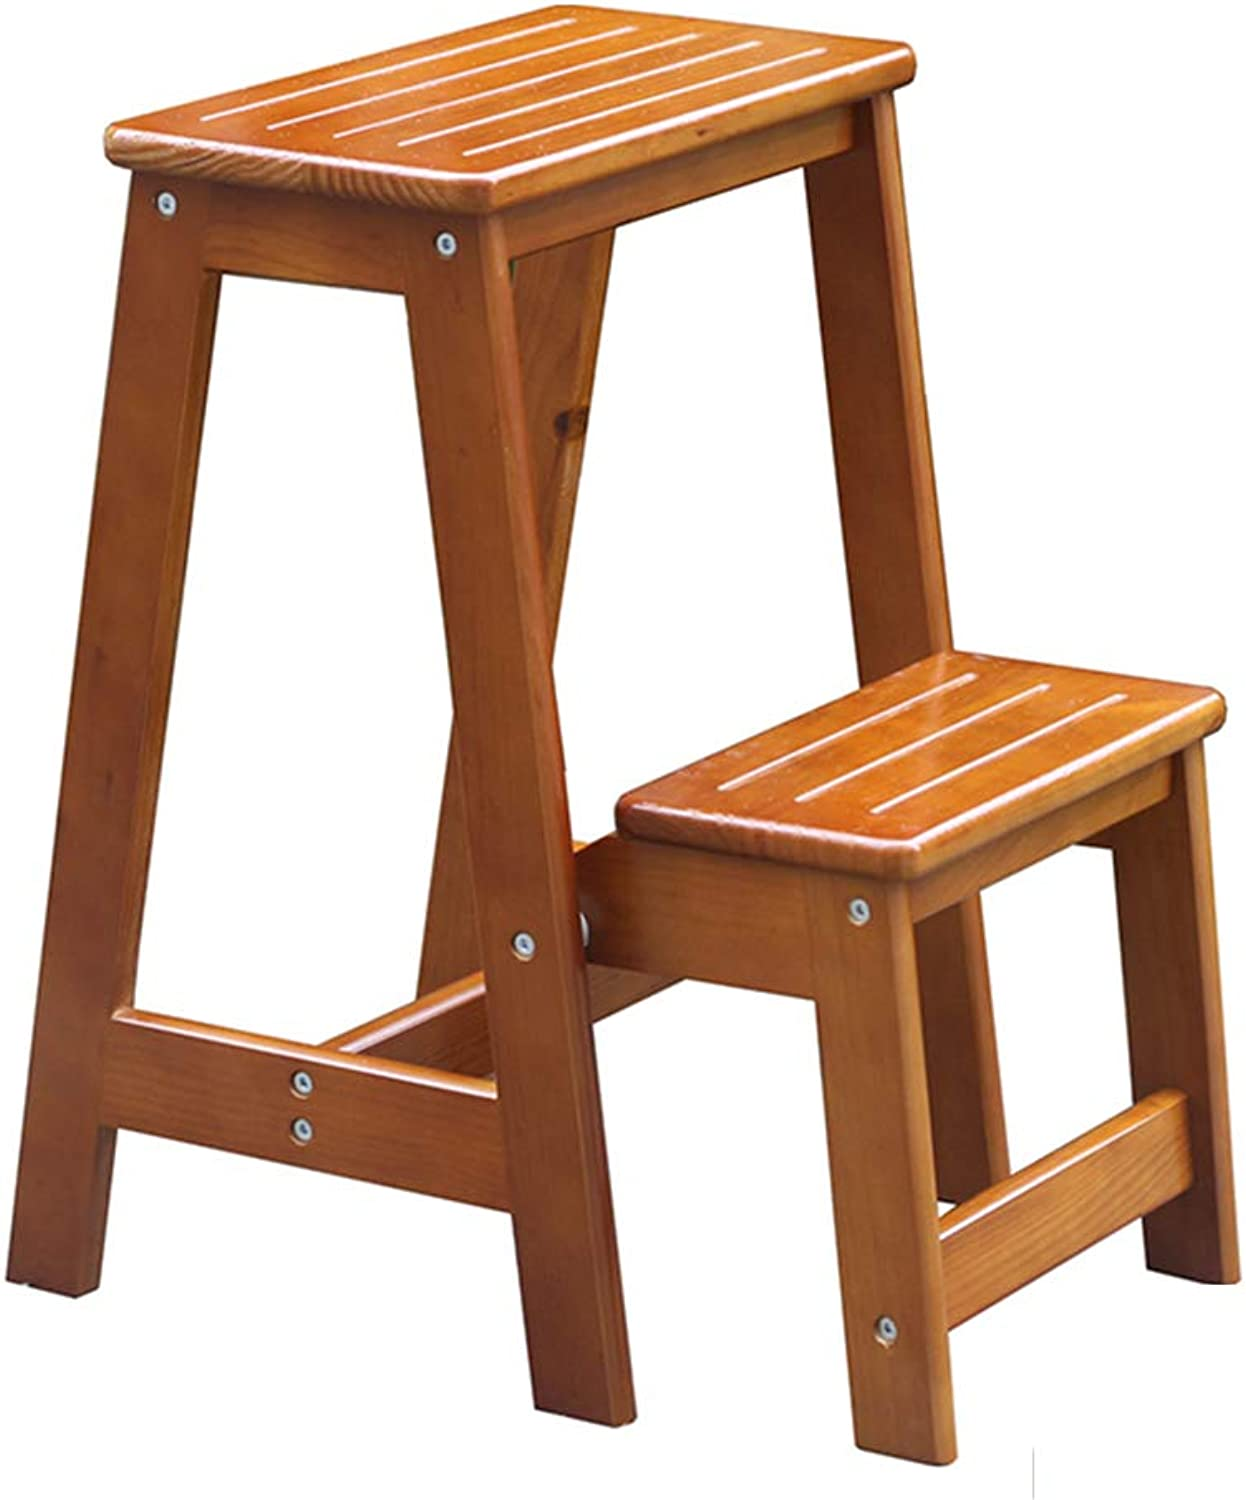 YJLGRYF Step Stool Ladder Stool Solid Wood Multifunction Foldable Thick Plate Non-Slip Design Environmentally Friendly, 2-Step Ladder Ladder (color   orange)